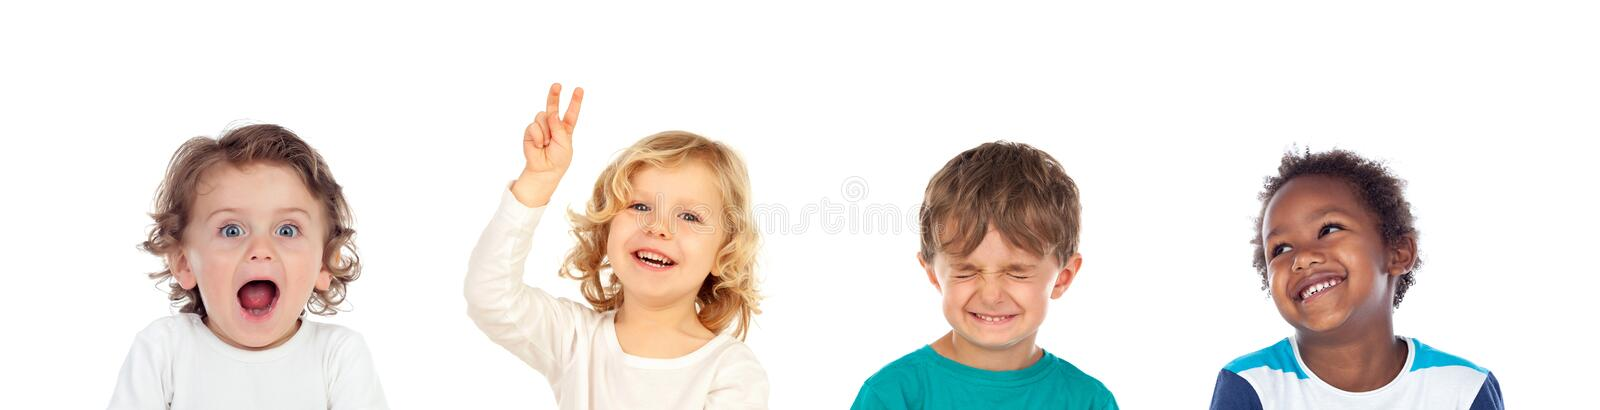 Four children making different expressions stock photography